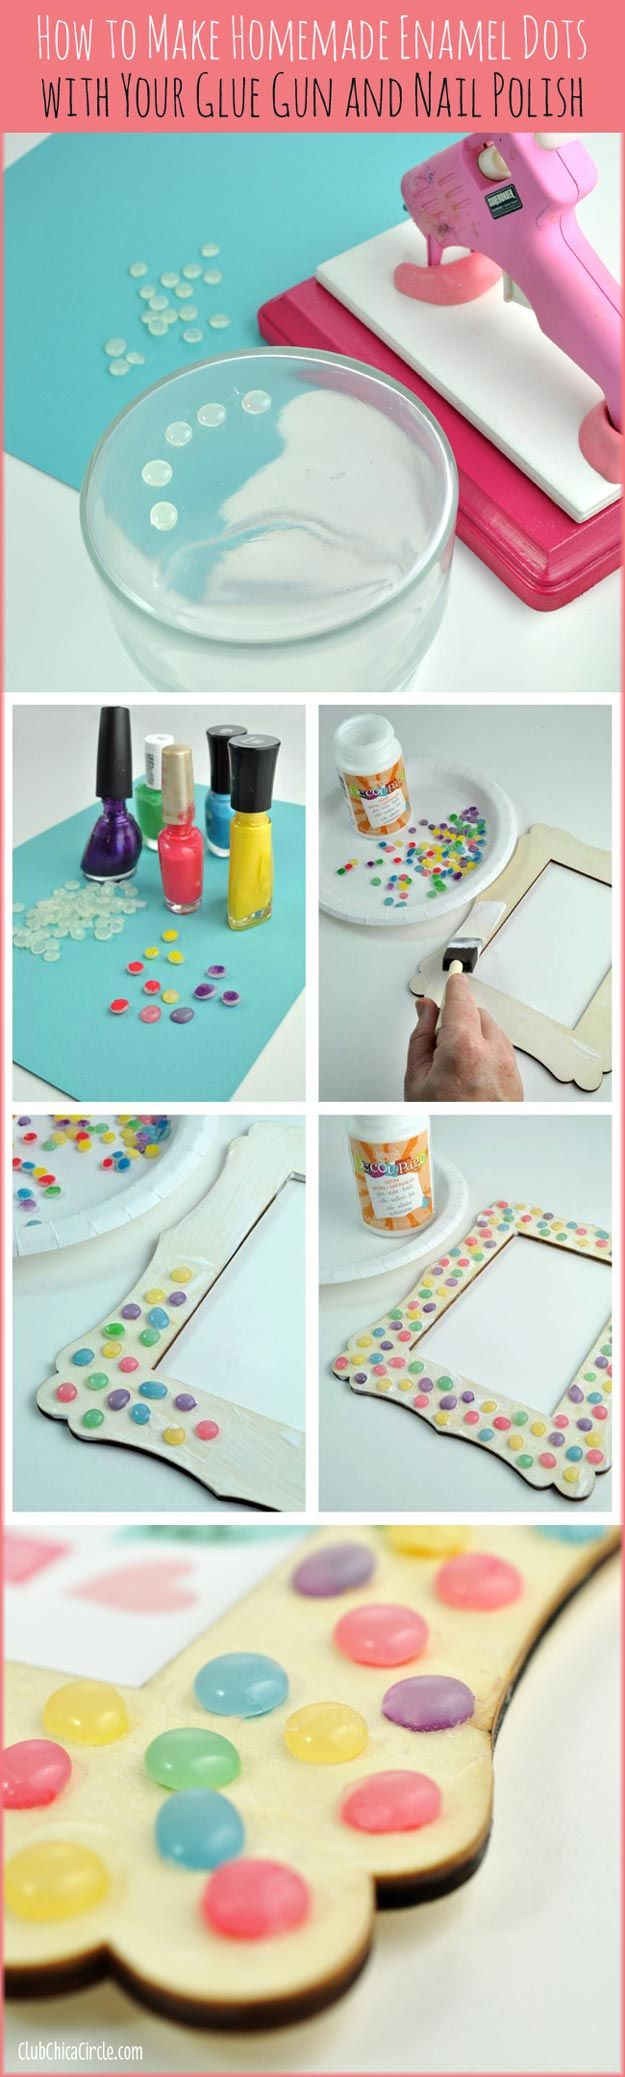 31 incredibly cool diy crafts using nail polish glue for Cool fun easy crafts